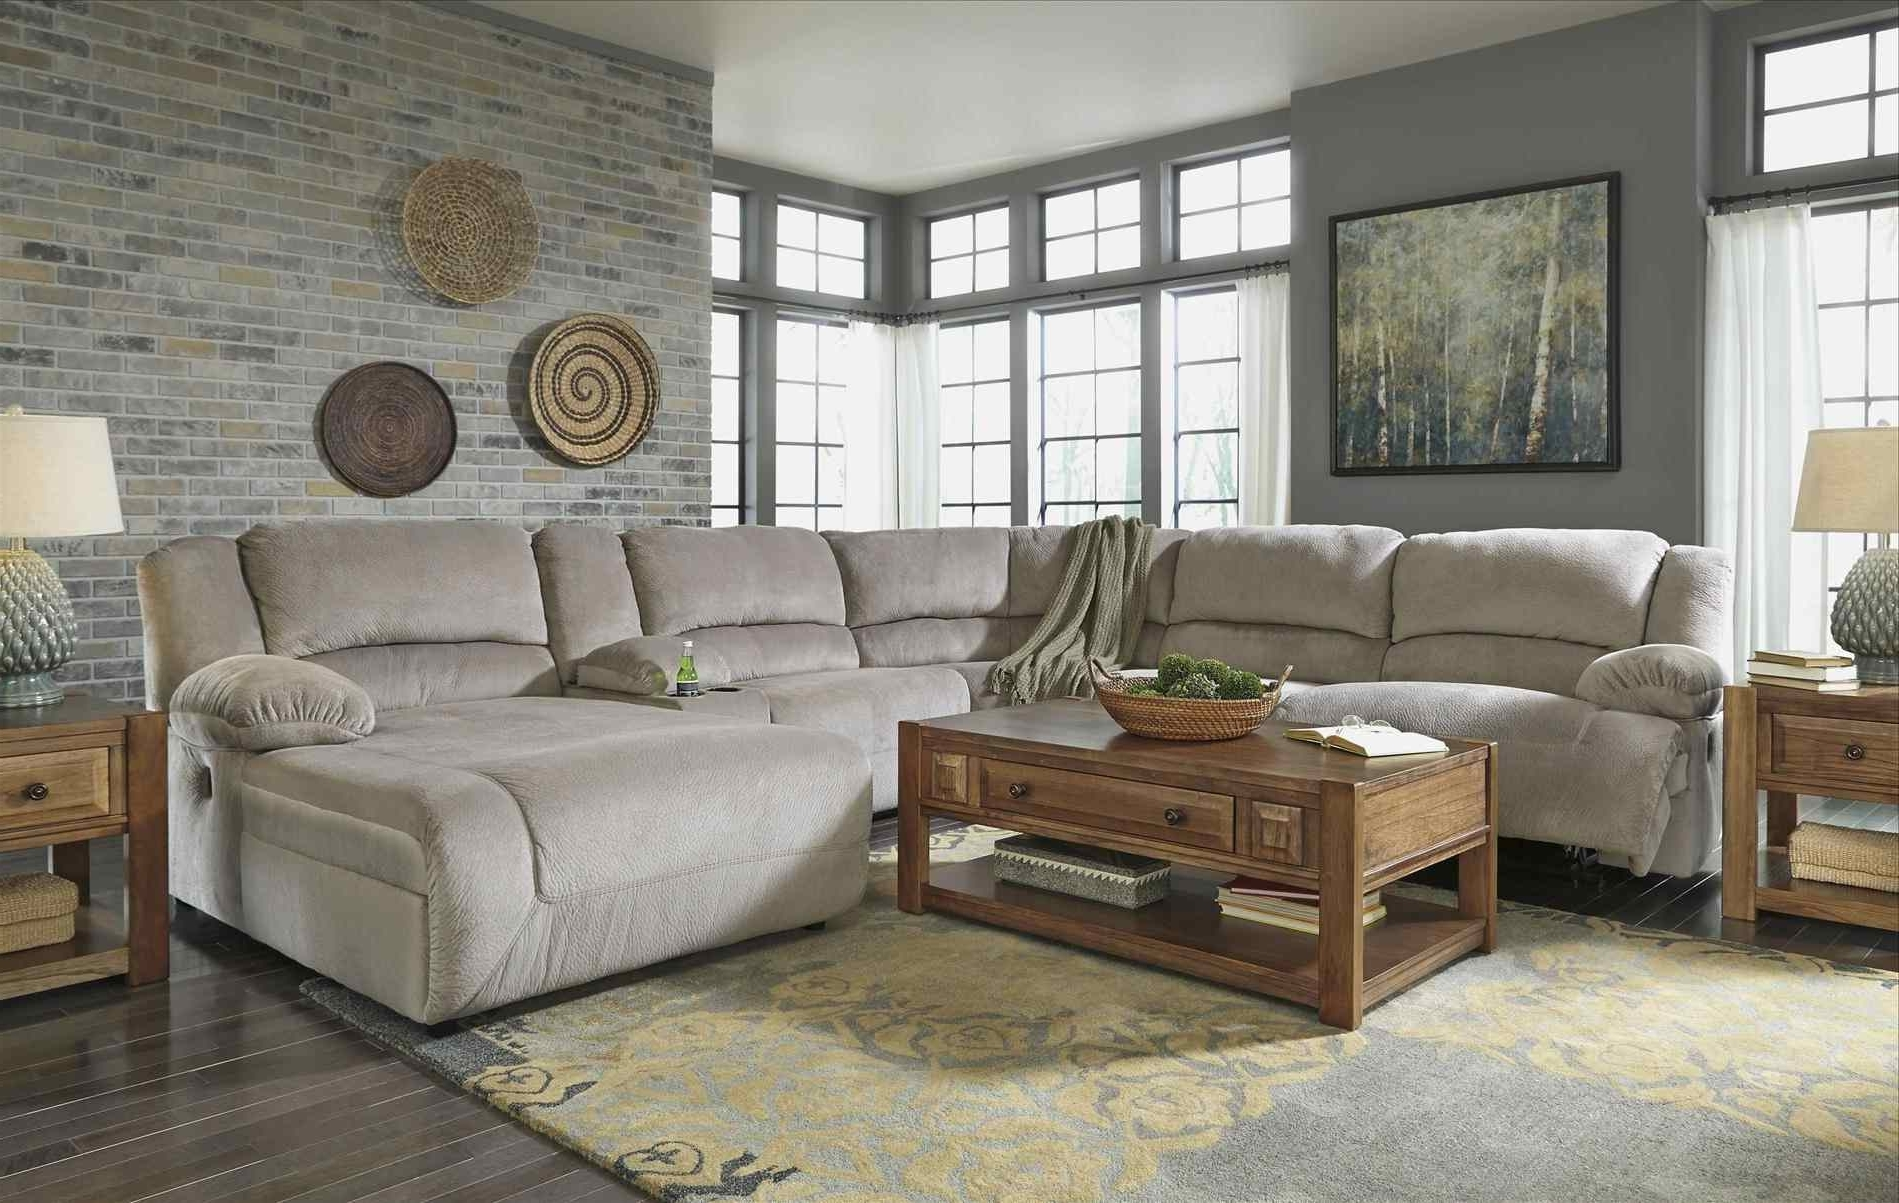 Couch : Furniture Bad Boy Sectional Es Wrap Around Couch Furniture For Current Sectional Sofas At Bad Boy (View 4 of 15)